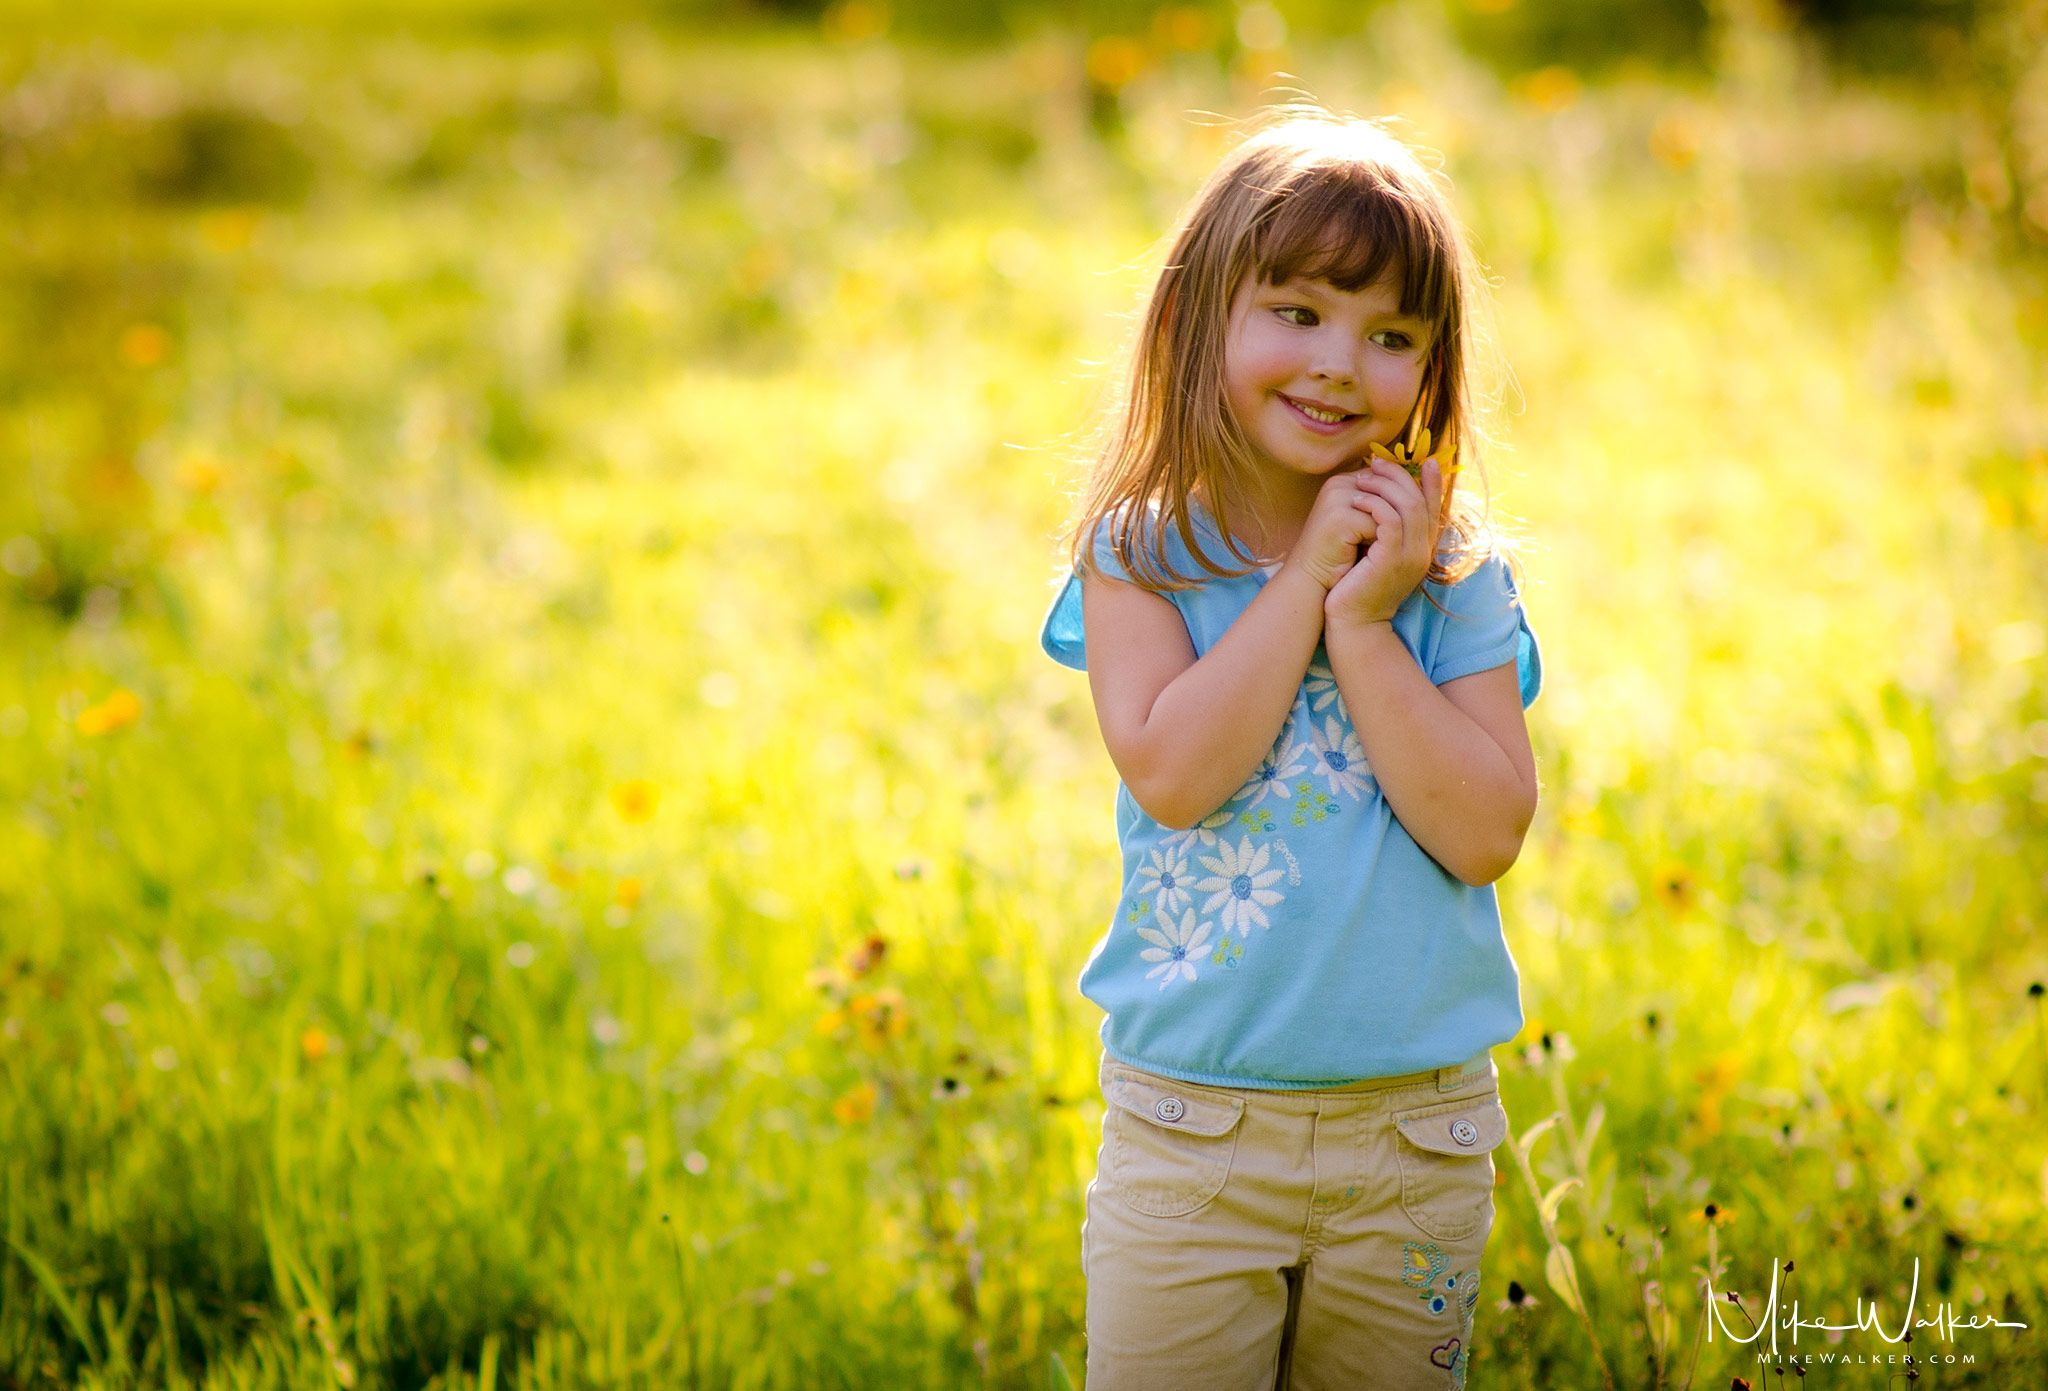 Young girl in a field of wildflowers. Family photographer Mike Walker.